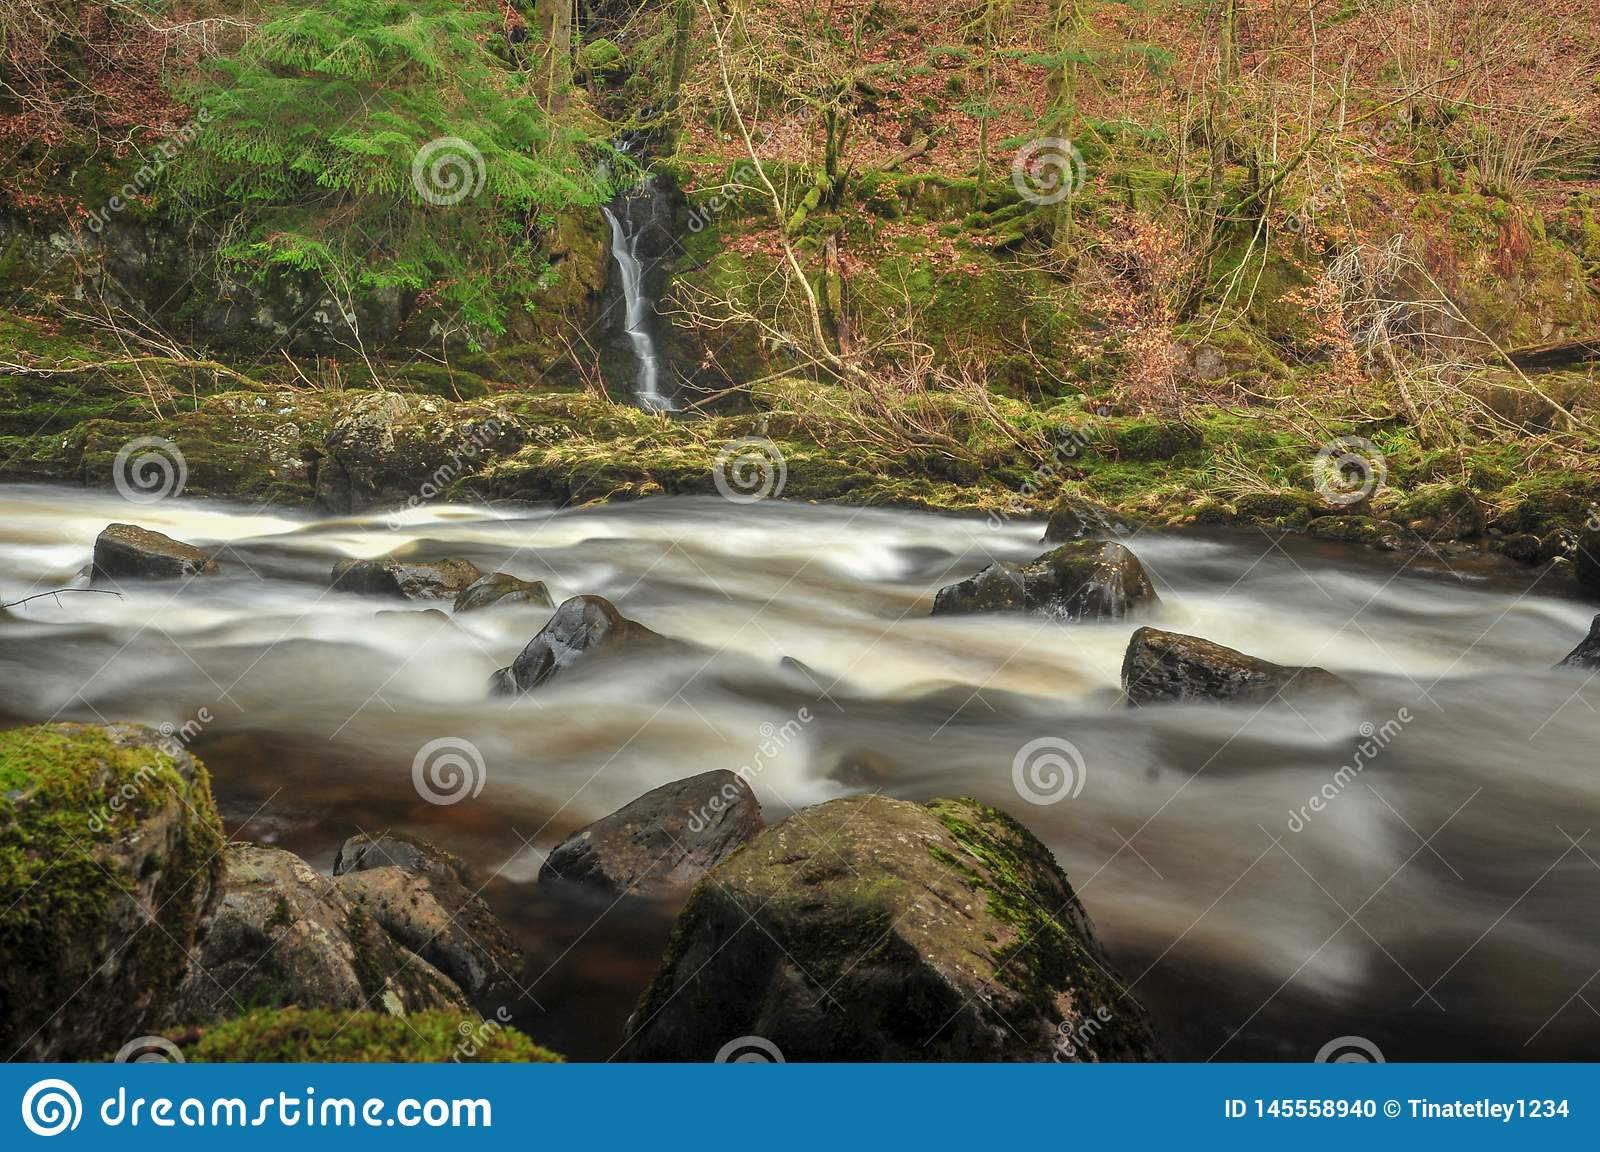 The River Tay at The Hermitage, Dunkeld in Scotland